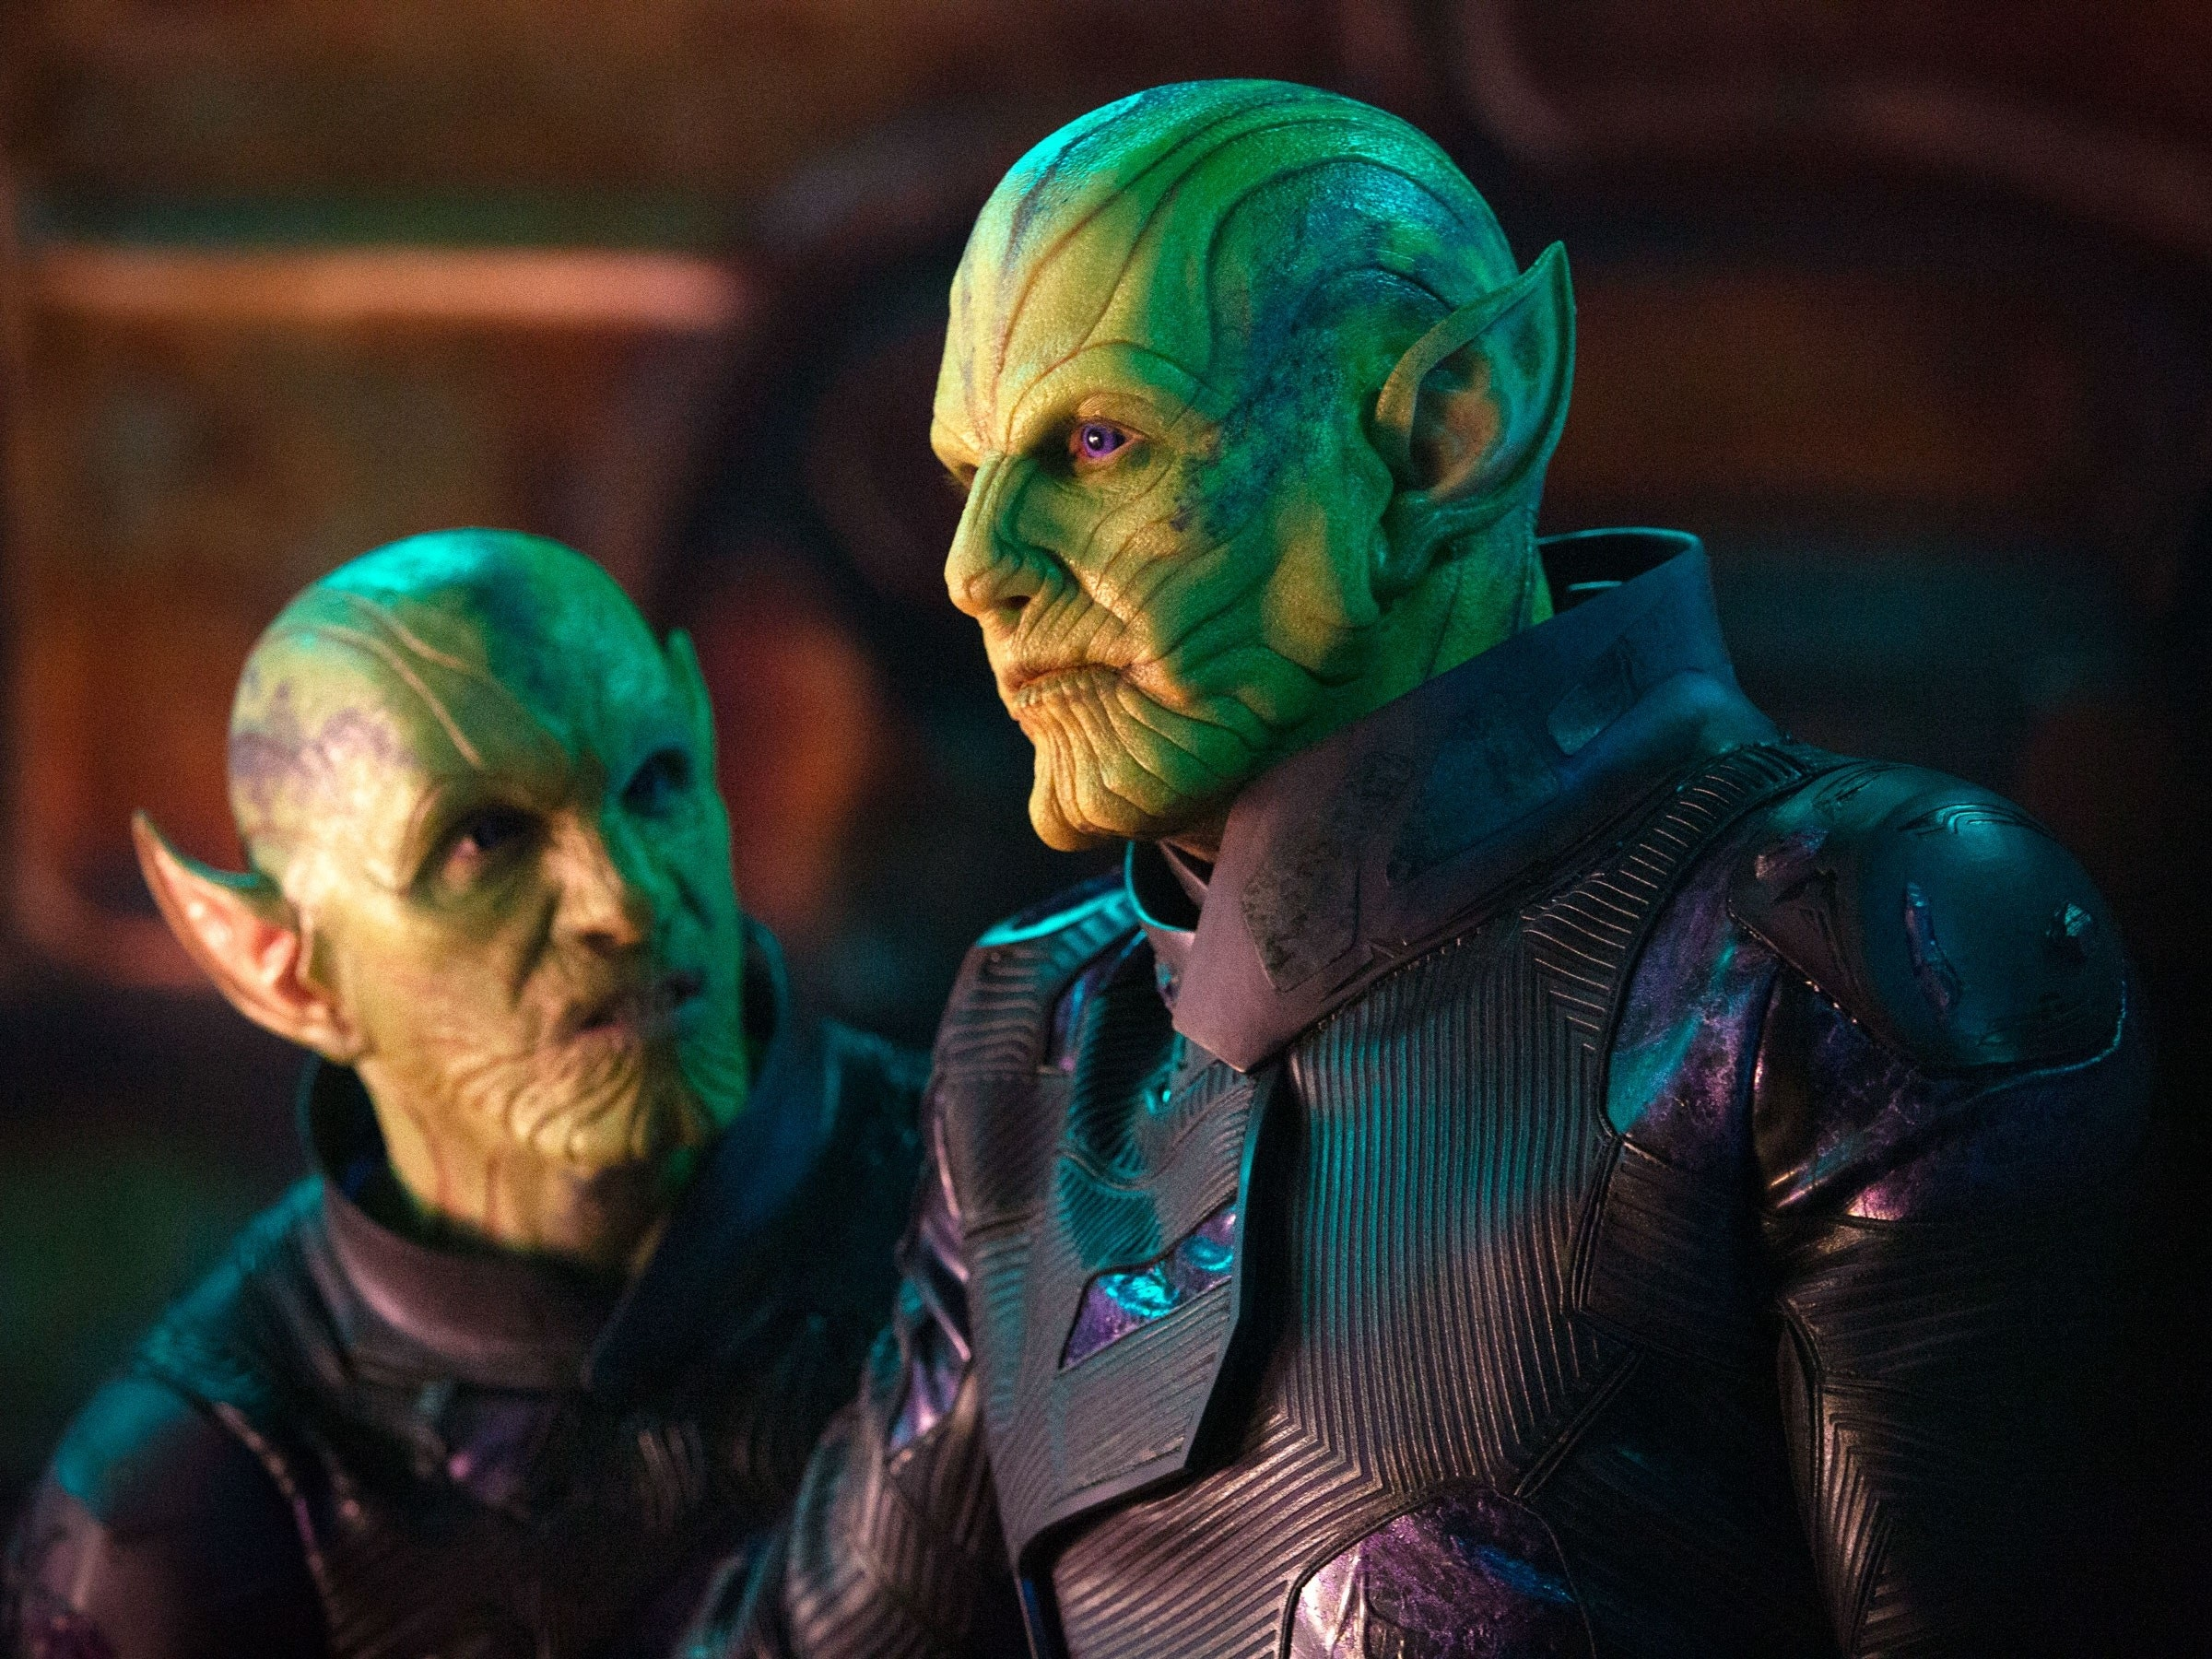 Talos stands next to another Skrull